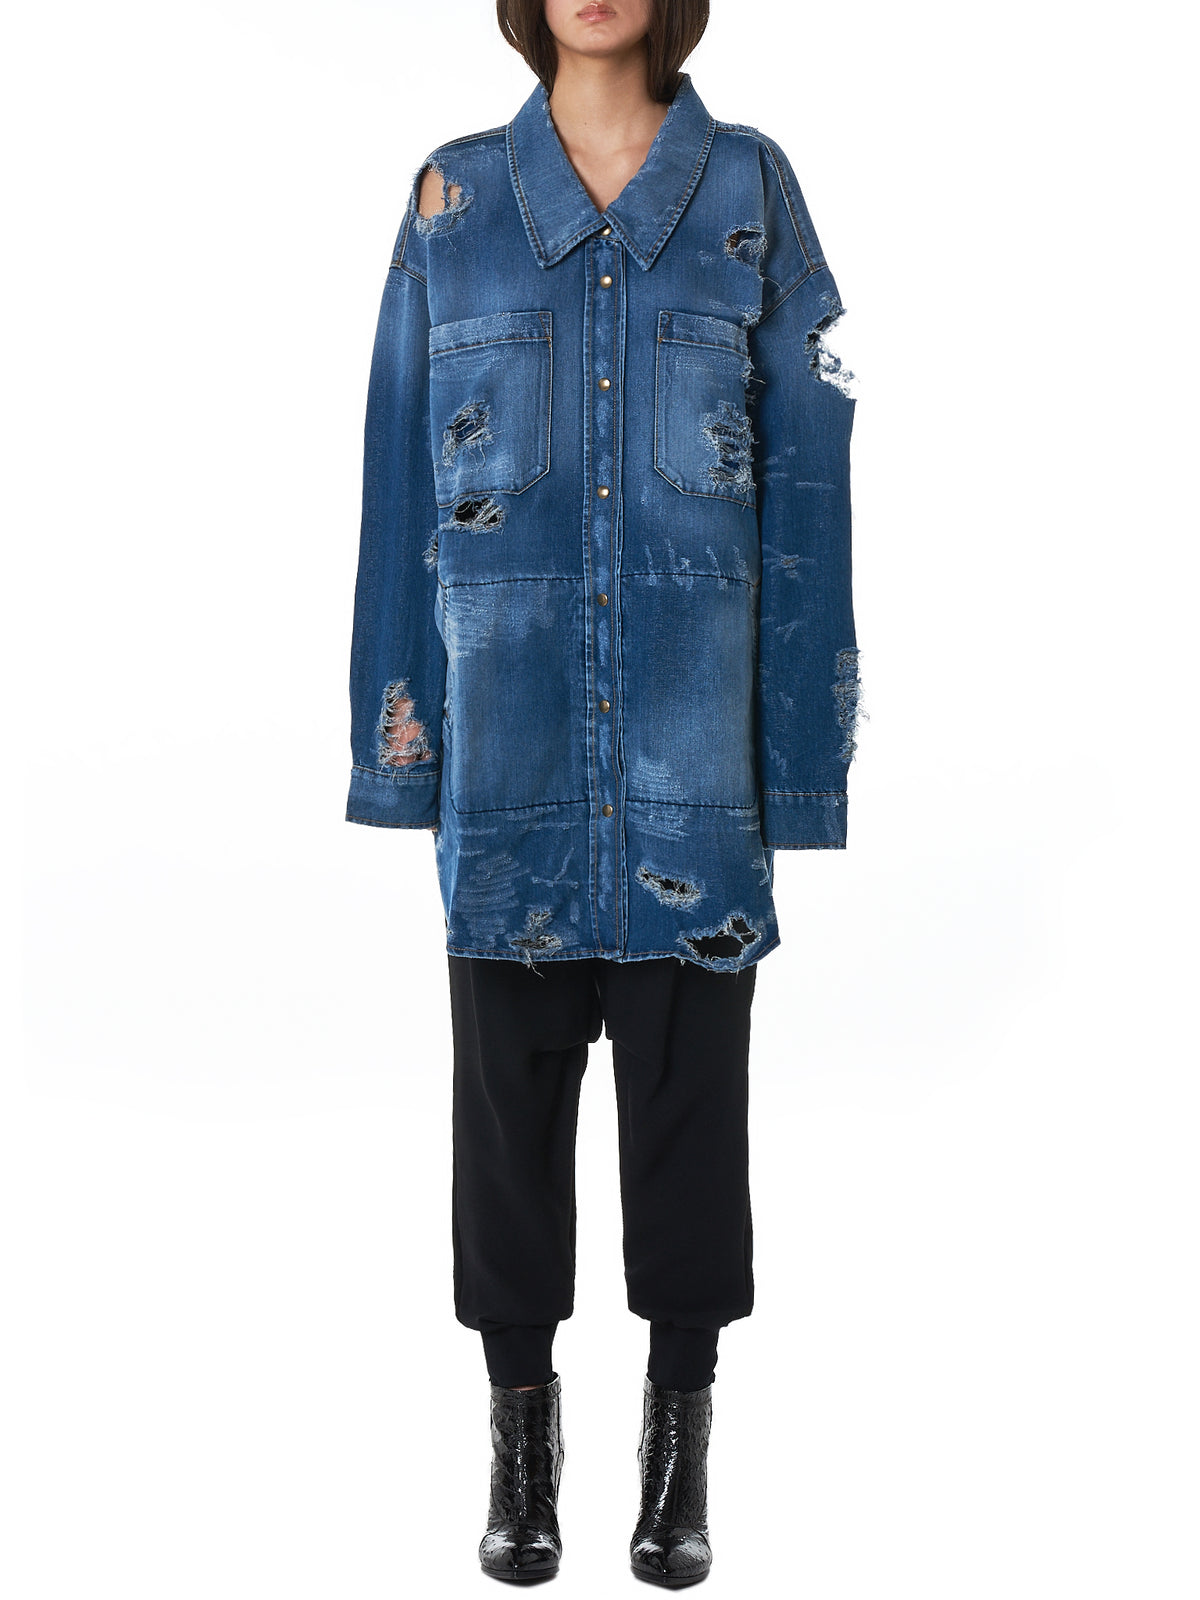 Faith Connexion Oversized Denim Shirt - Hlorenzo Front